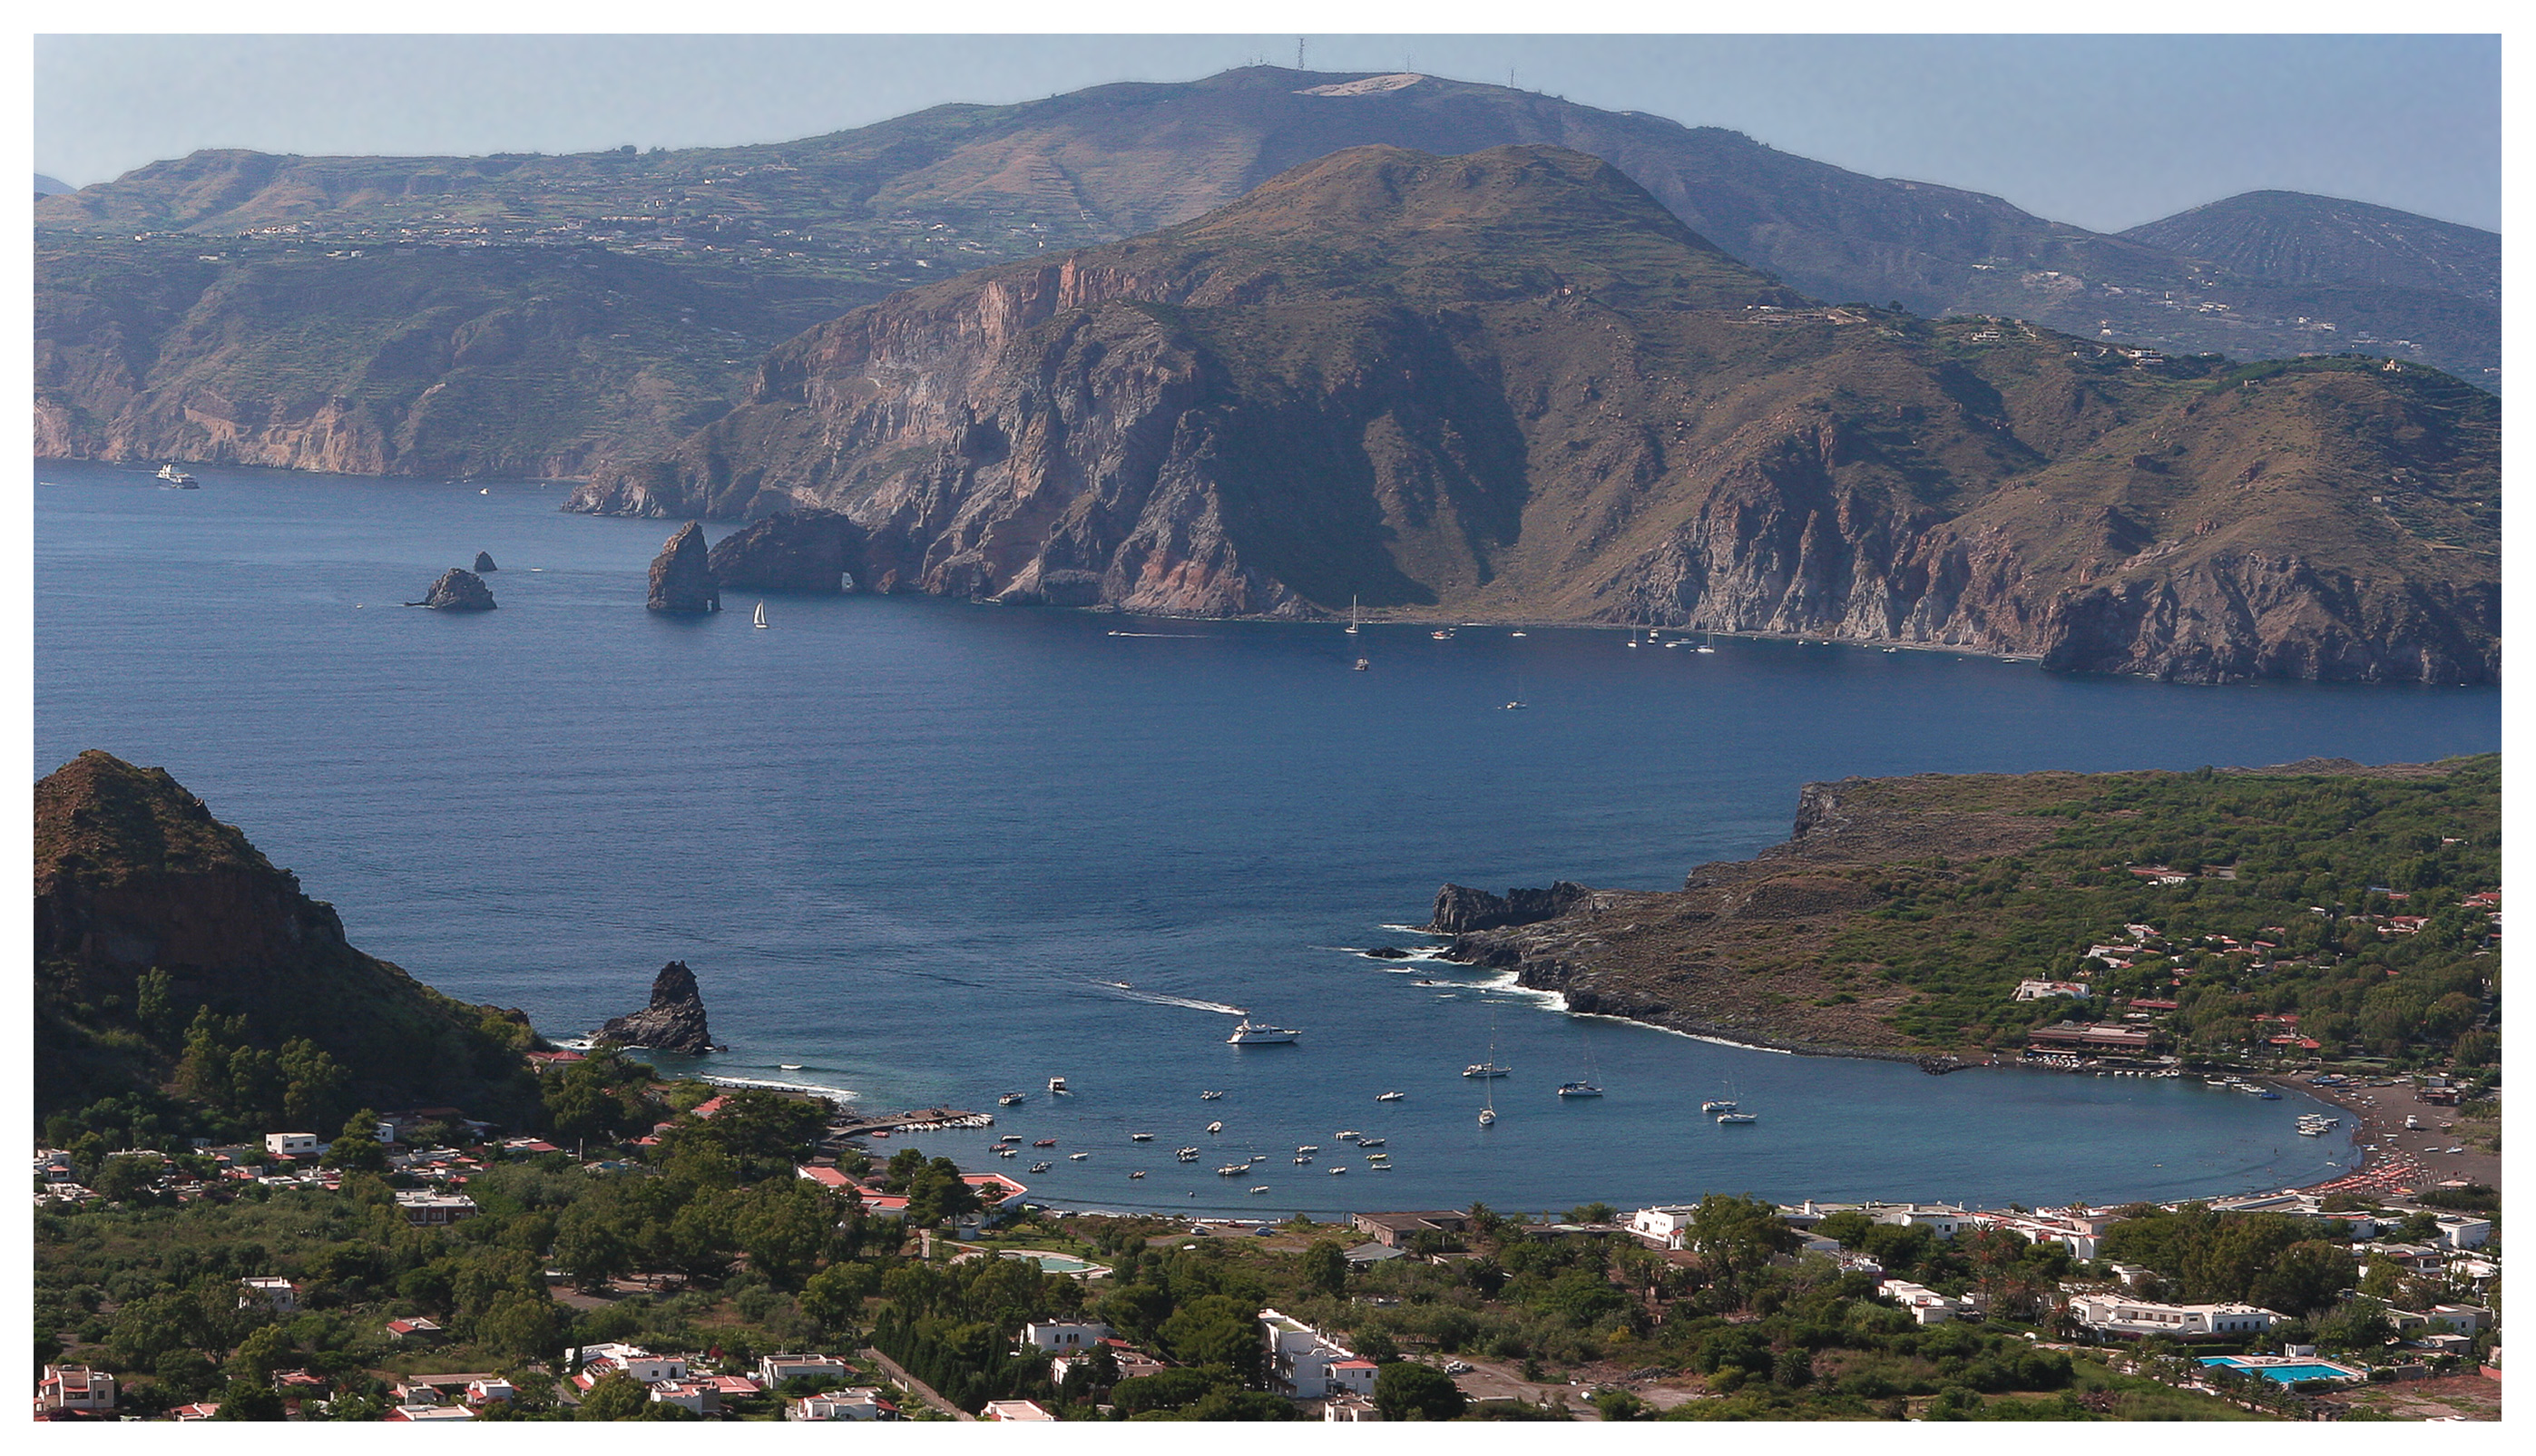 Panoramic views across to the island of Lipari from the crater at Vulcano, Aeolean Islands, Sicily